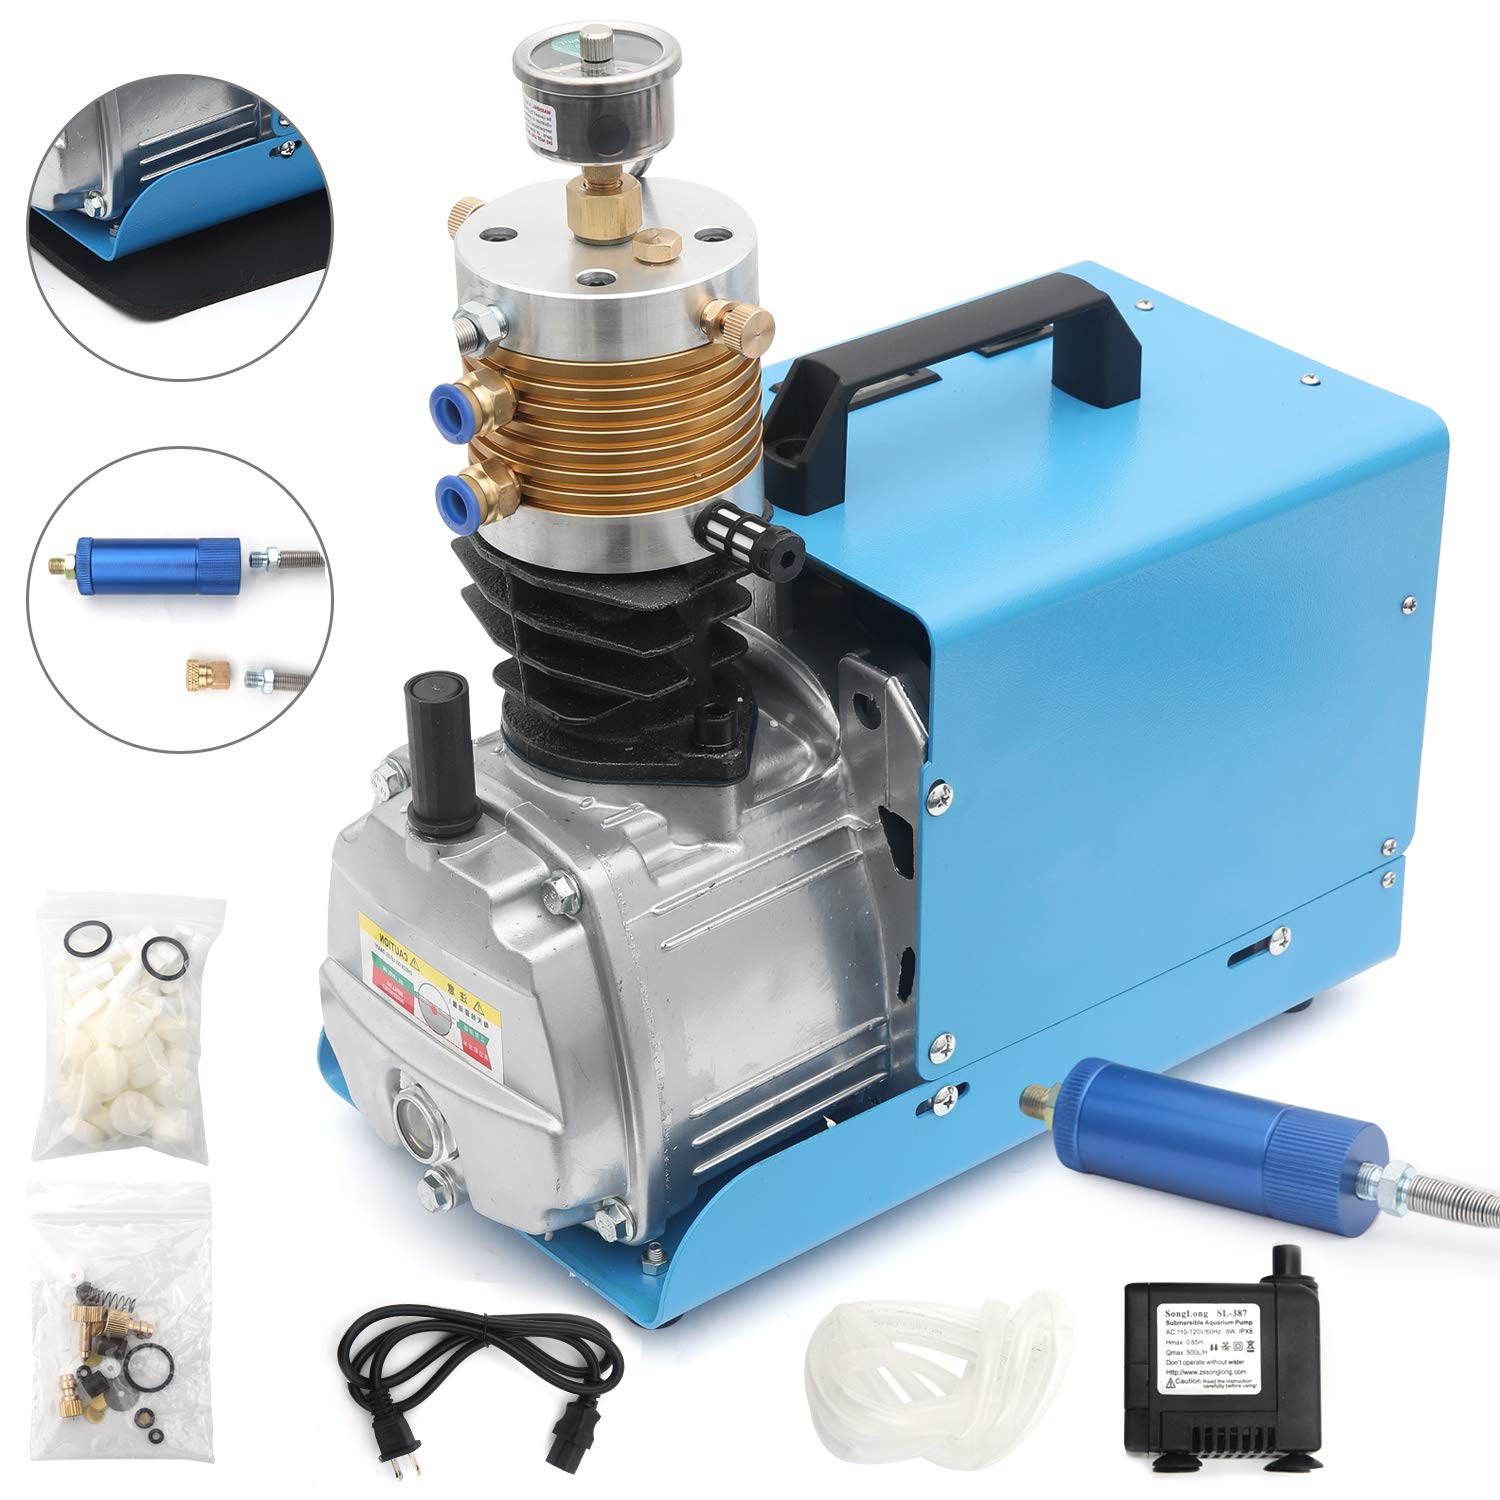 INTBUYING High Pressure 30Mpa Electric Air Compressor Pump 4500 PSI//300 BAR PCP Electric Air Pump Air Rifle Paintball Fill Station for Fire Fighting and Diving